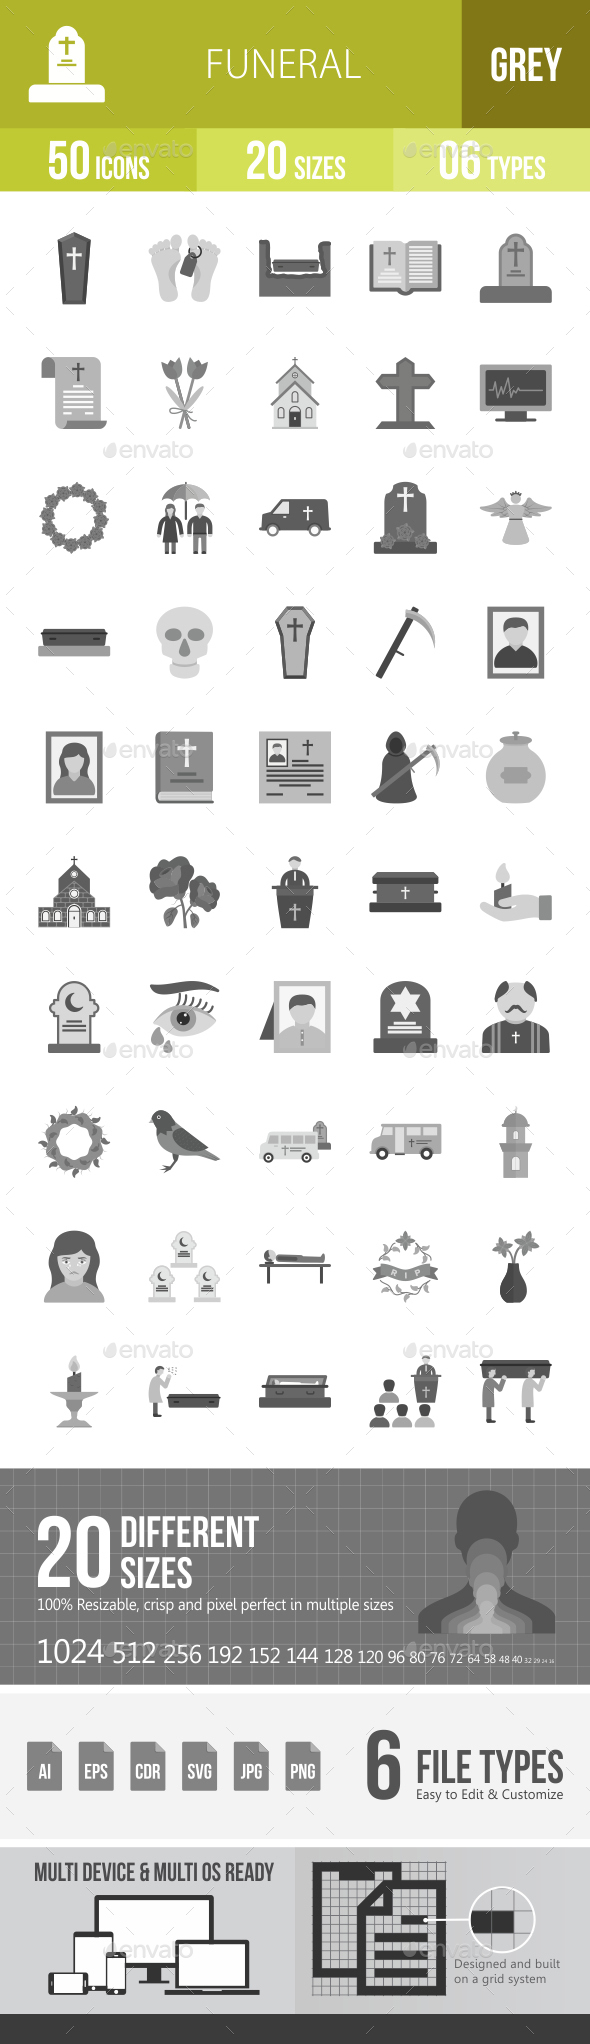 Funeral Greyscale Icons - Icons